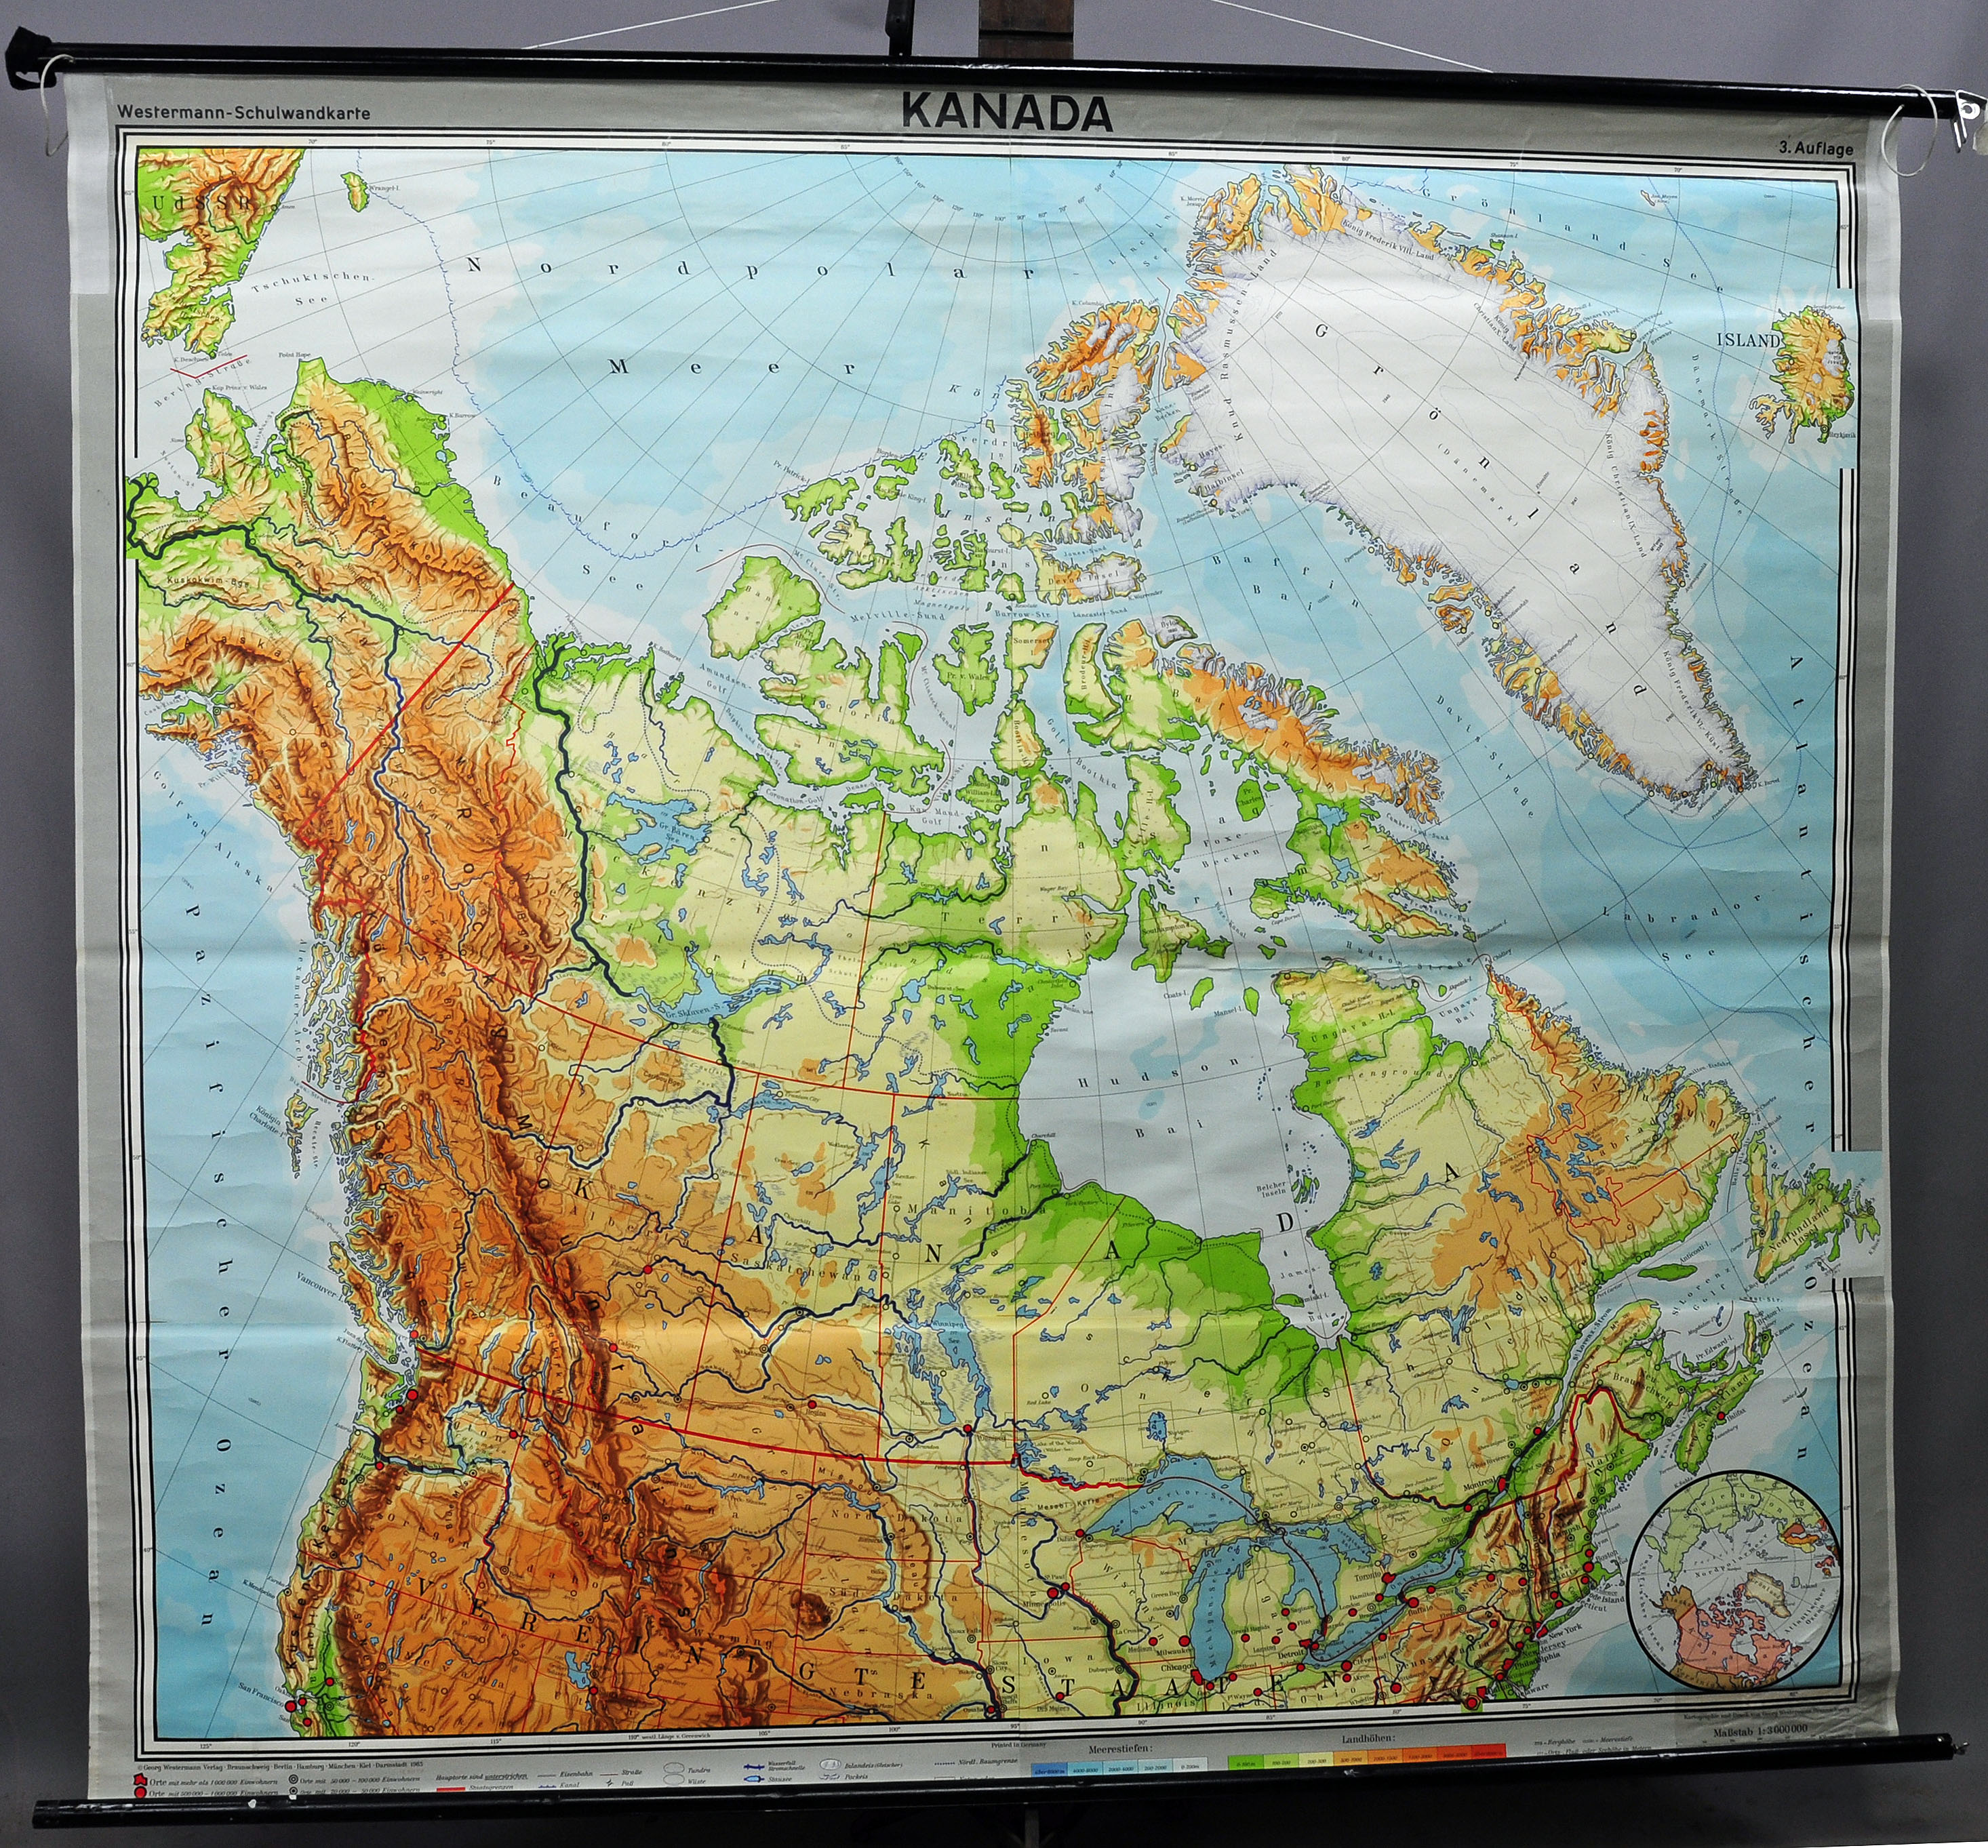 vintage picture poster wall chart geography map physical Canada Greenland |  eBay